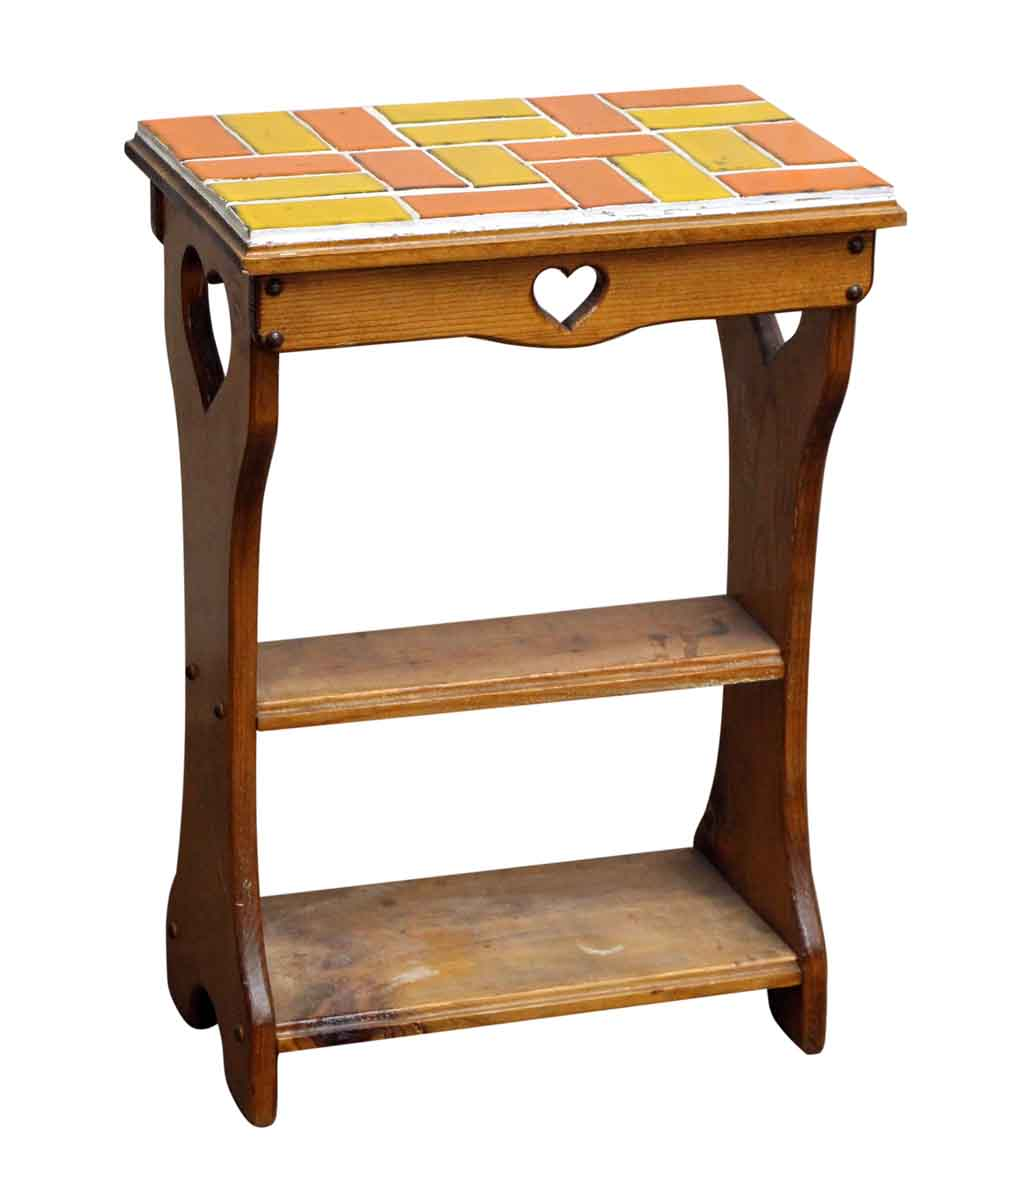 Beau End Table With Heart Cut Outs And Colorful Tile Top